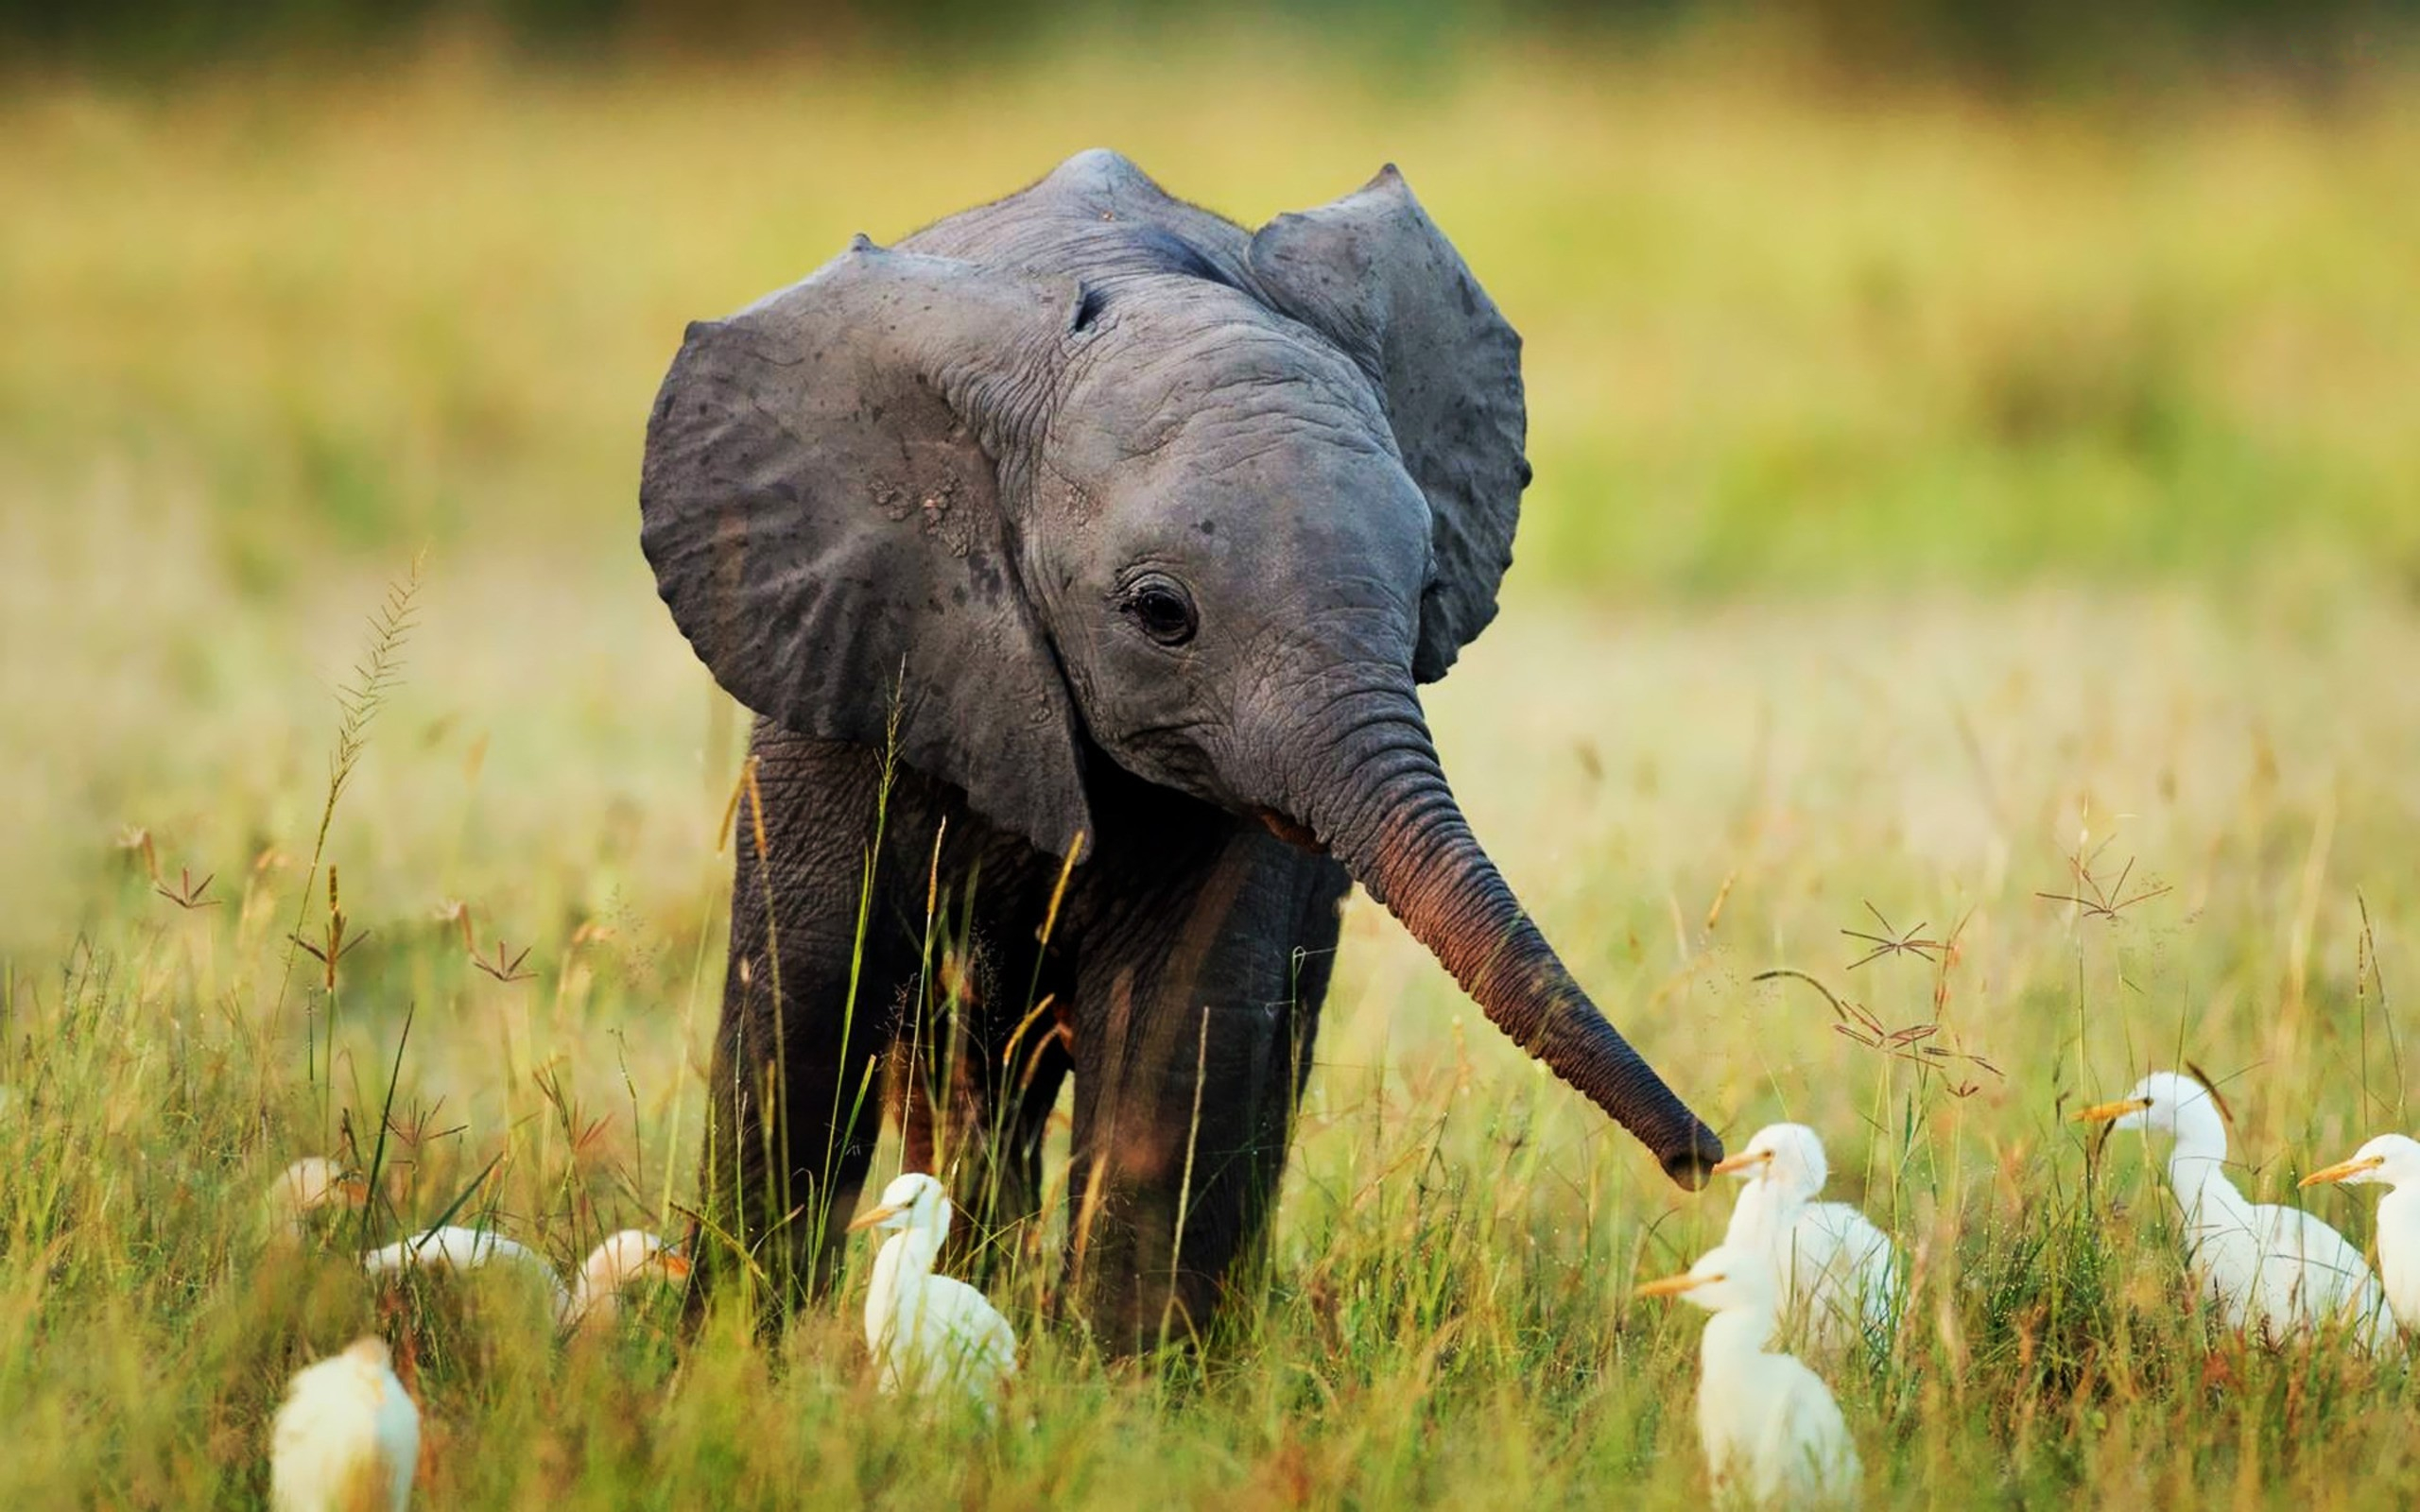 Nature Animals Cute Little Baby Elephant 69582 HD Wallpaper Res 2560x1600